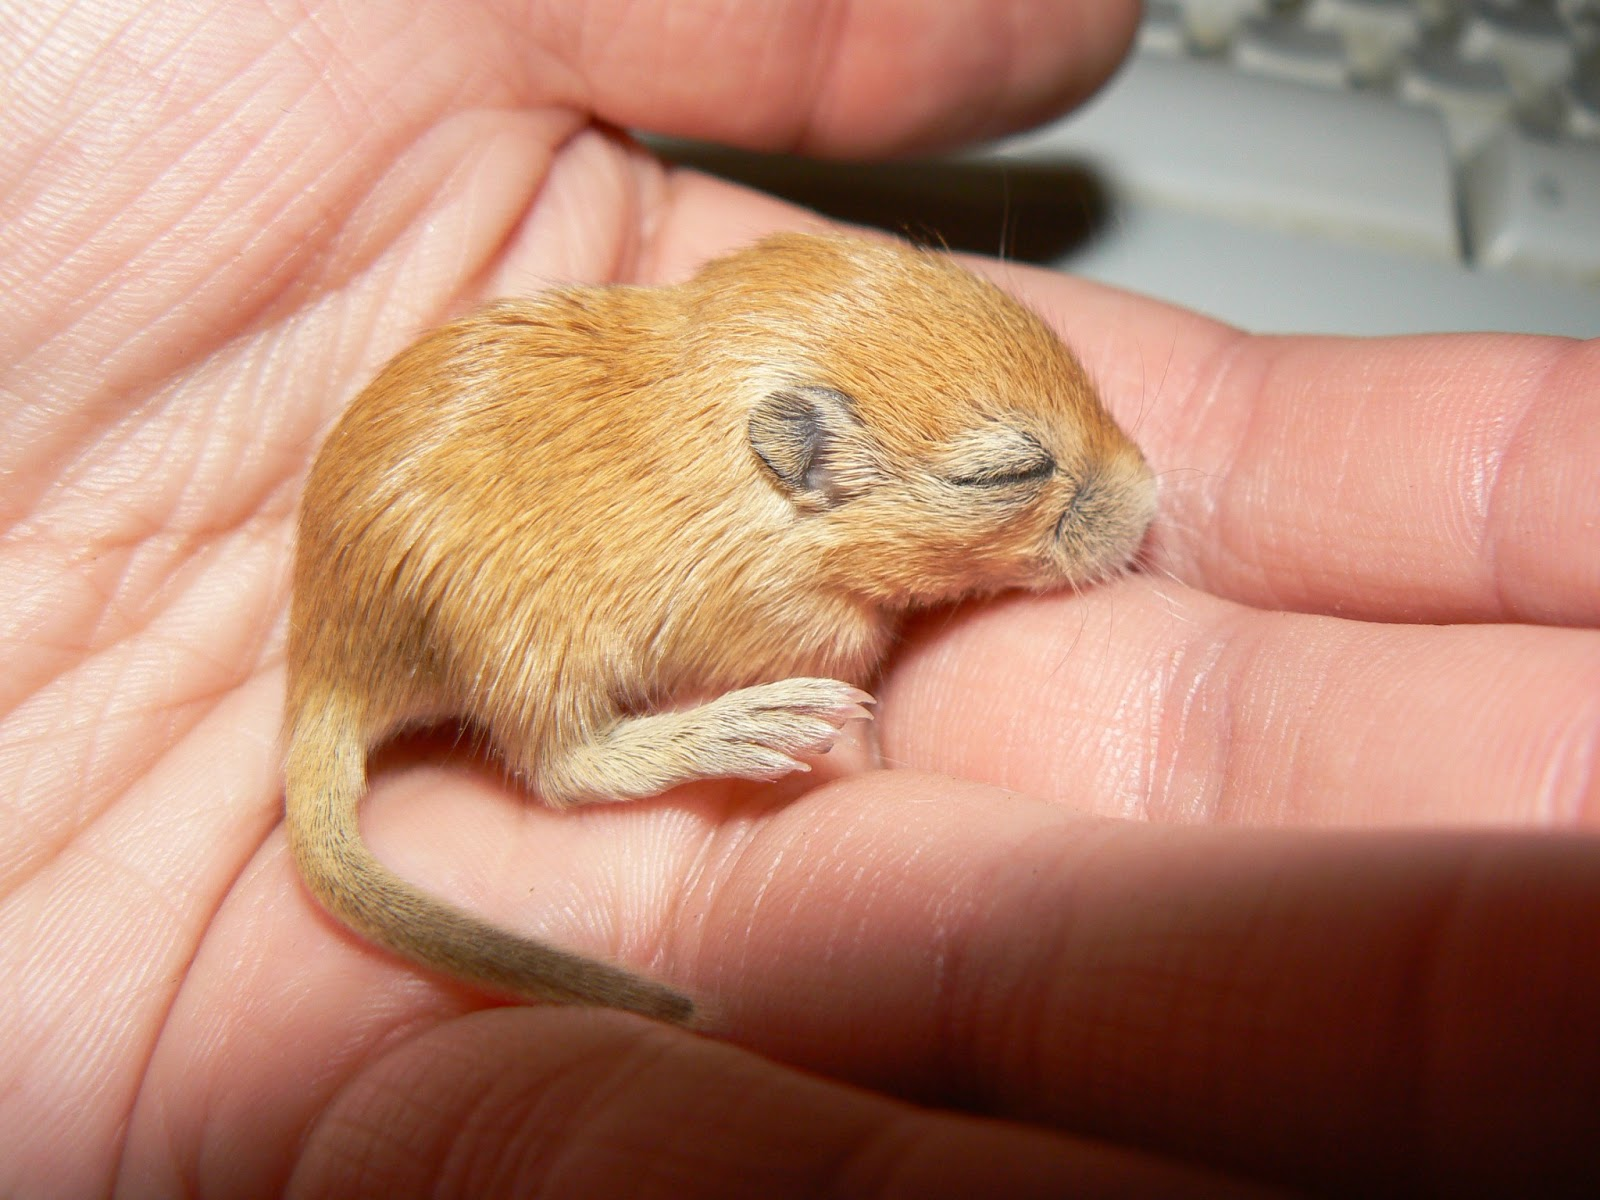 Newborn gerbils - photo#8